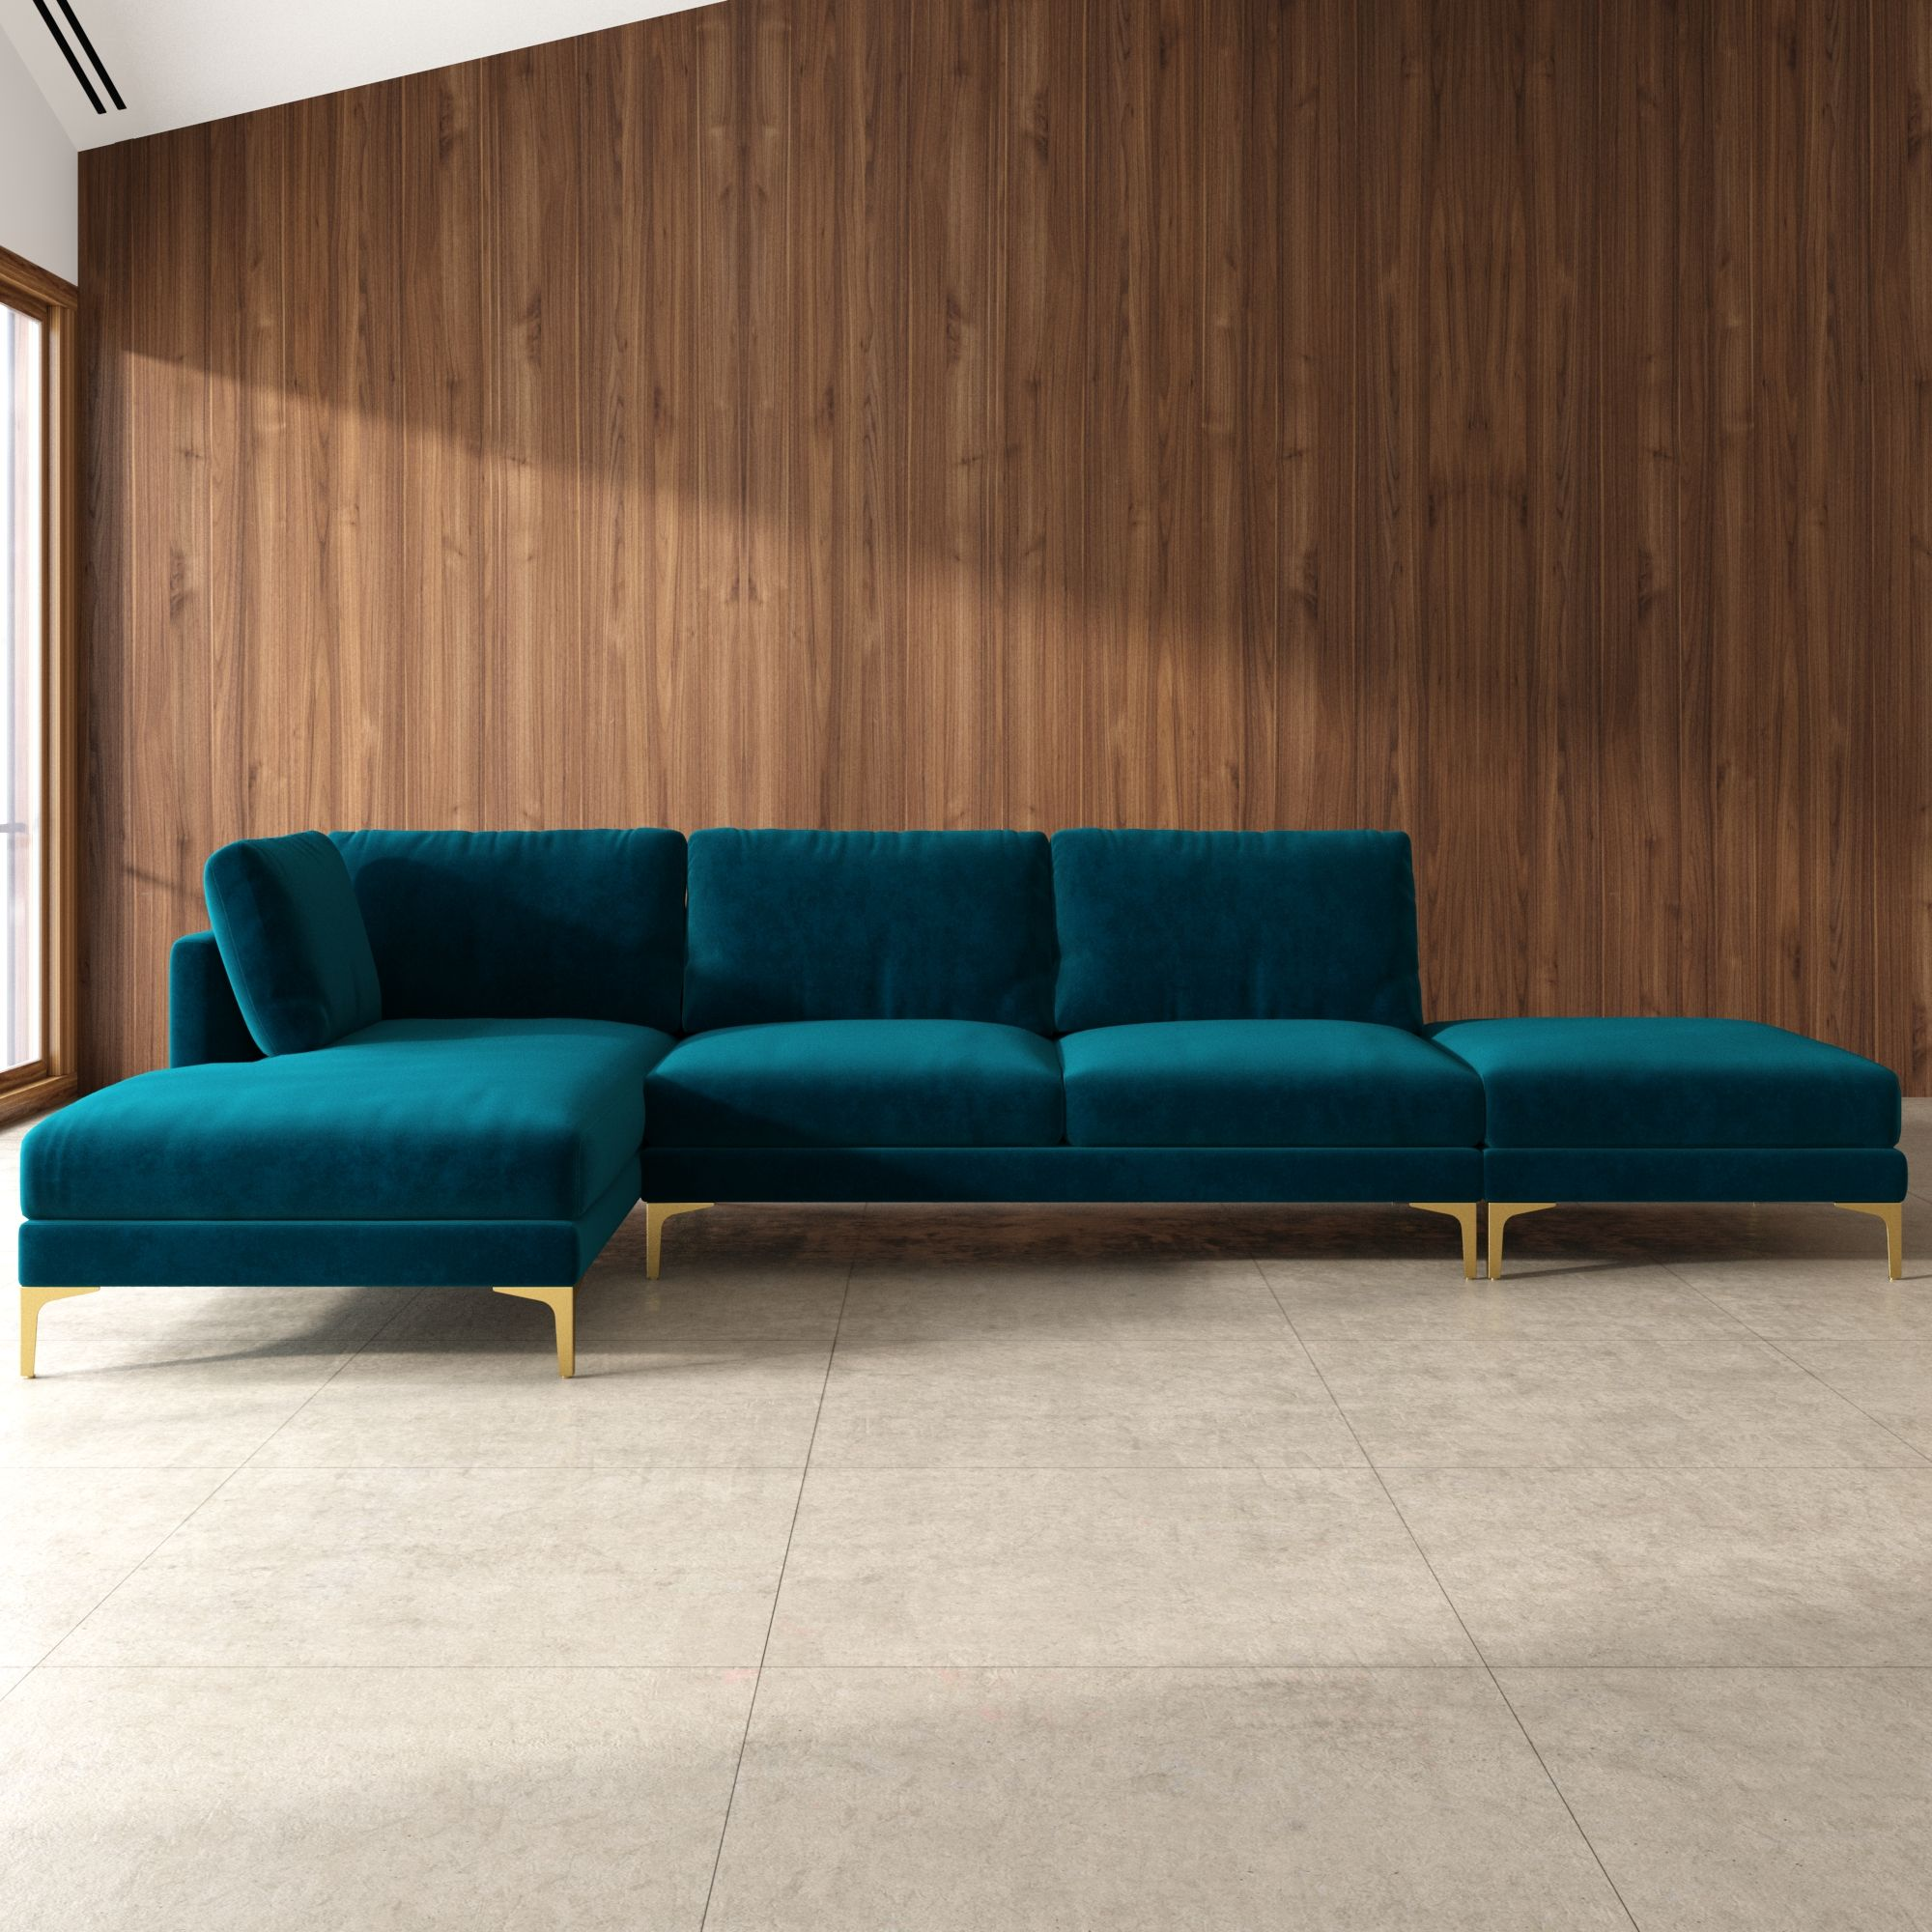 Adams Chaise Sectional Sofa With Ottoman Deep Teal Velvet Left Facing Brass Castlery In 2020 Green Sofa Inspiration Sofa Inspiration Sectional Sofa